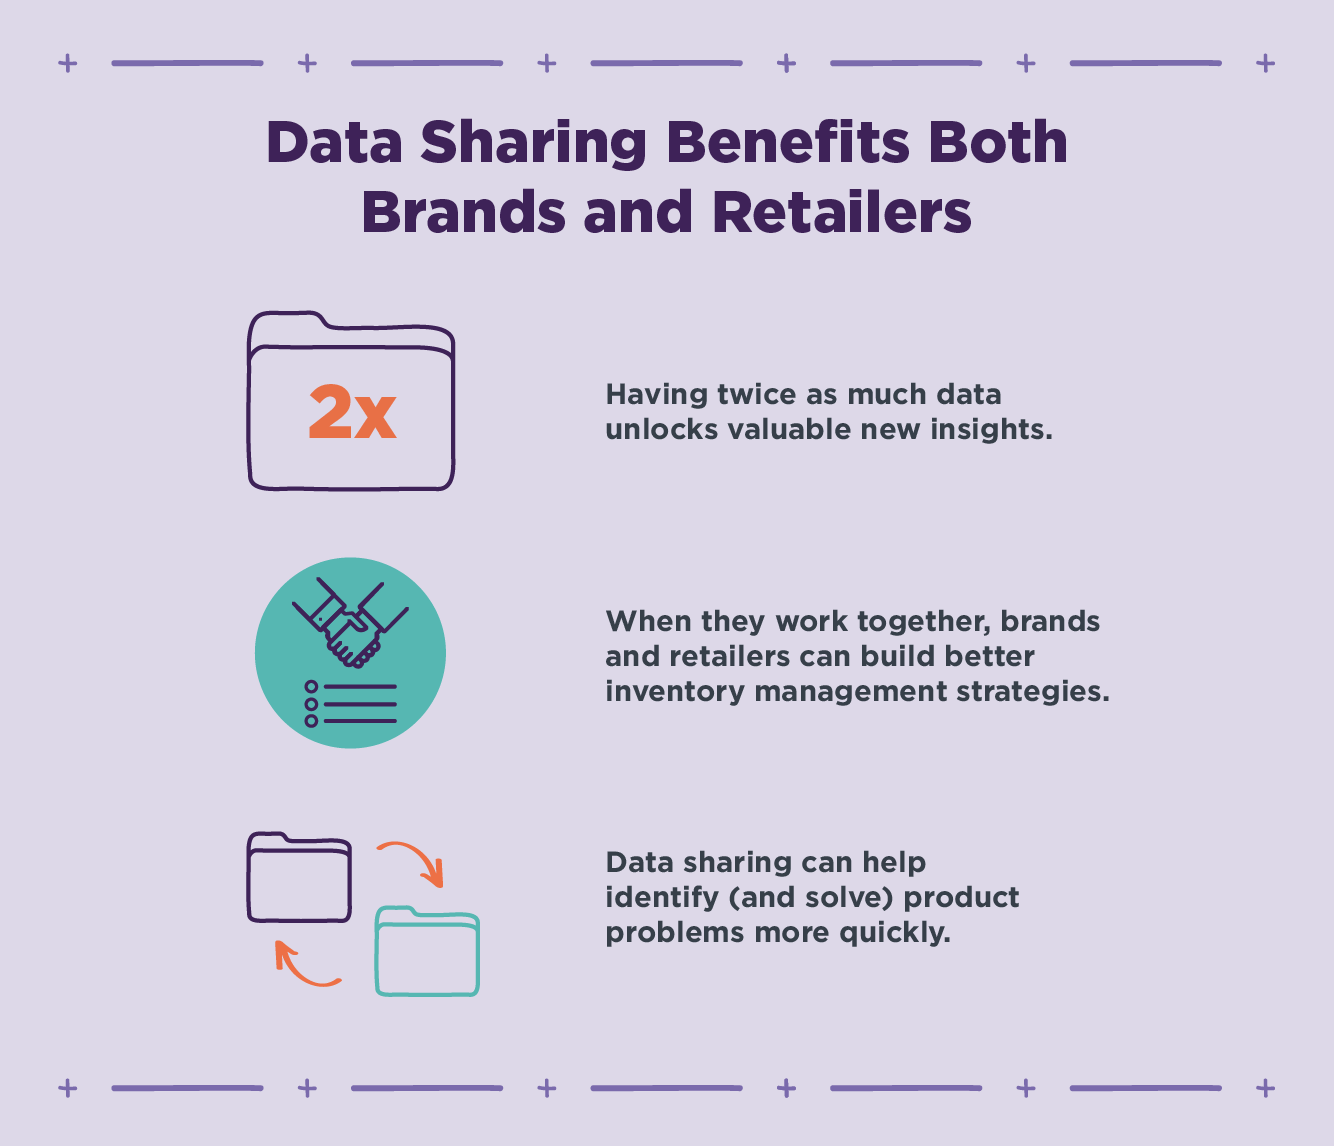 Why Brands and Retail Partners Should Share Data